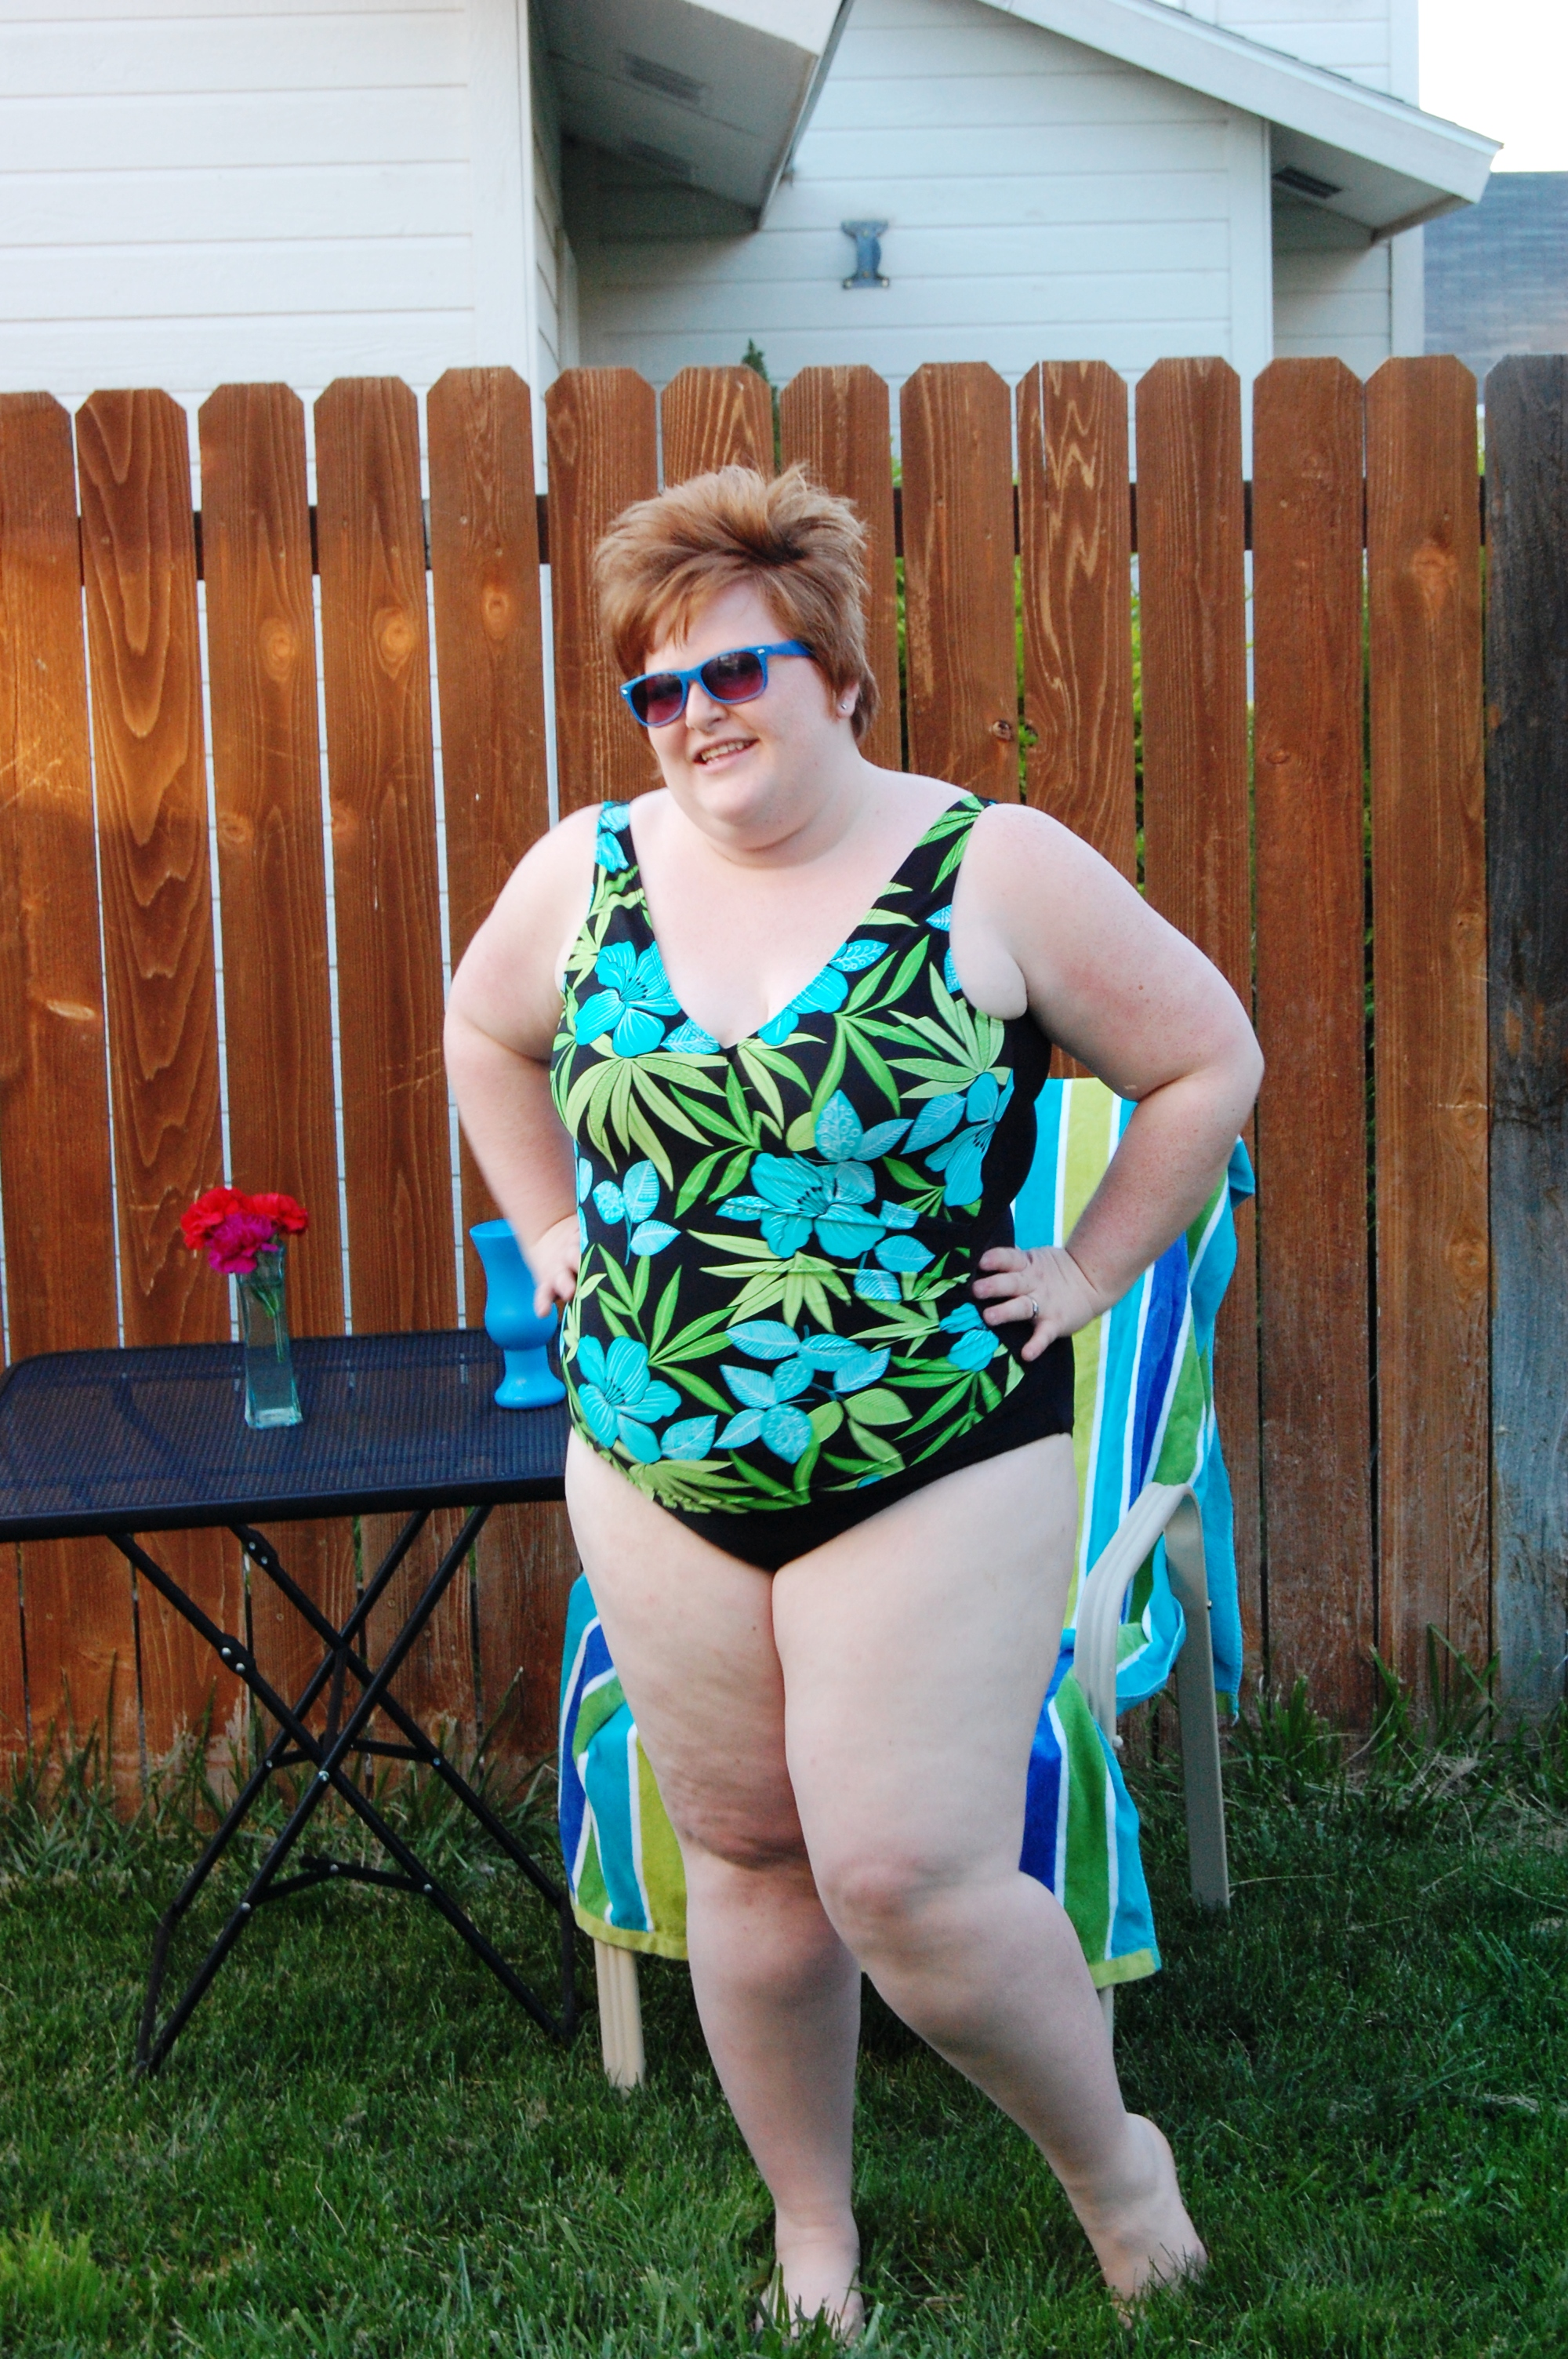 Pictures Of Fat People In Bathing Suits 34